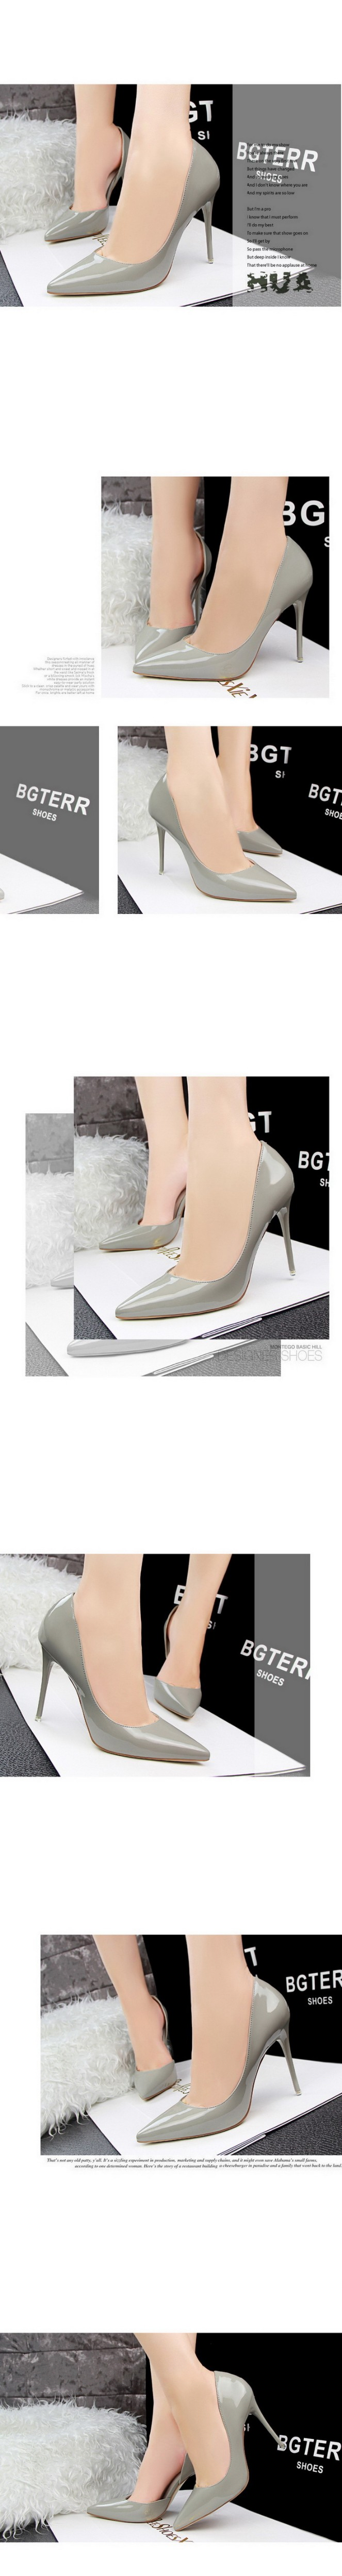 2015 New Sexy Fashion Thin High Heels Women Shoes PU Nightclub 10CM Pointed Toe Purple High-heeled Women Pumps Shoes ZX2.5